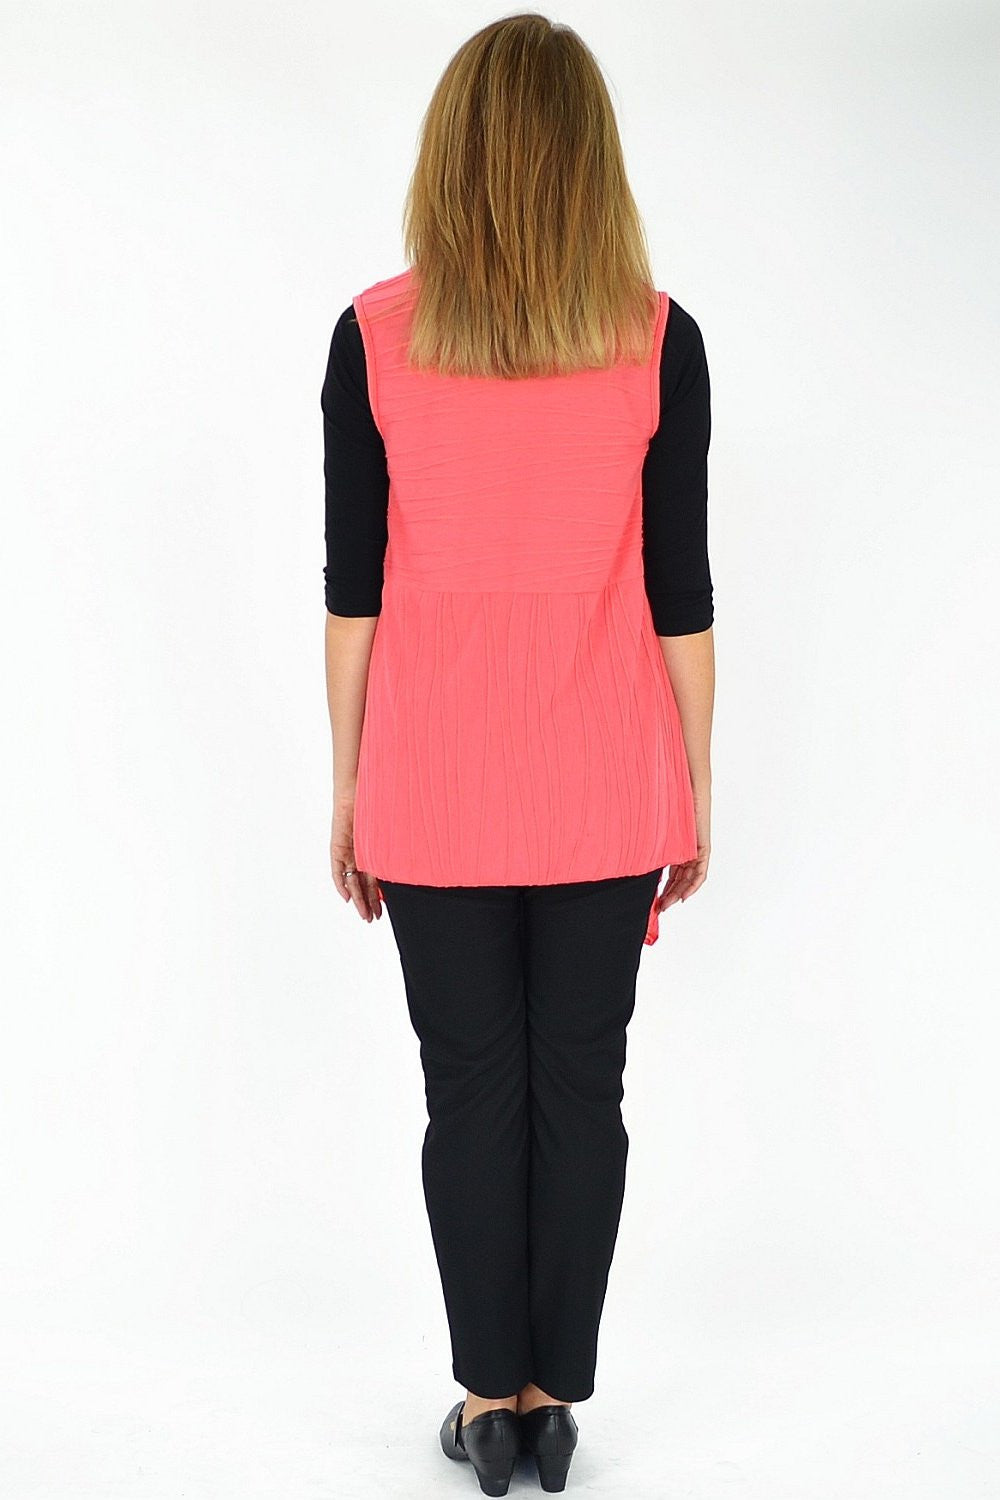 Salmon Nicole Vest | I Love Tunics | Tunic Tops | Tunic | Tunic Dresses  | womens clothing online